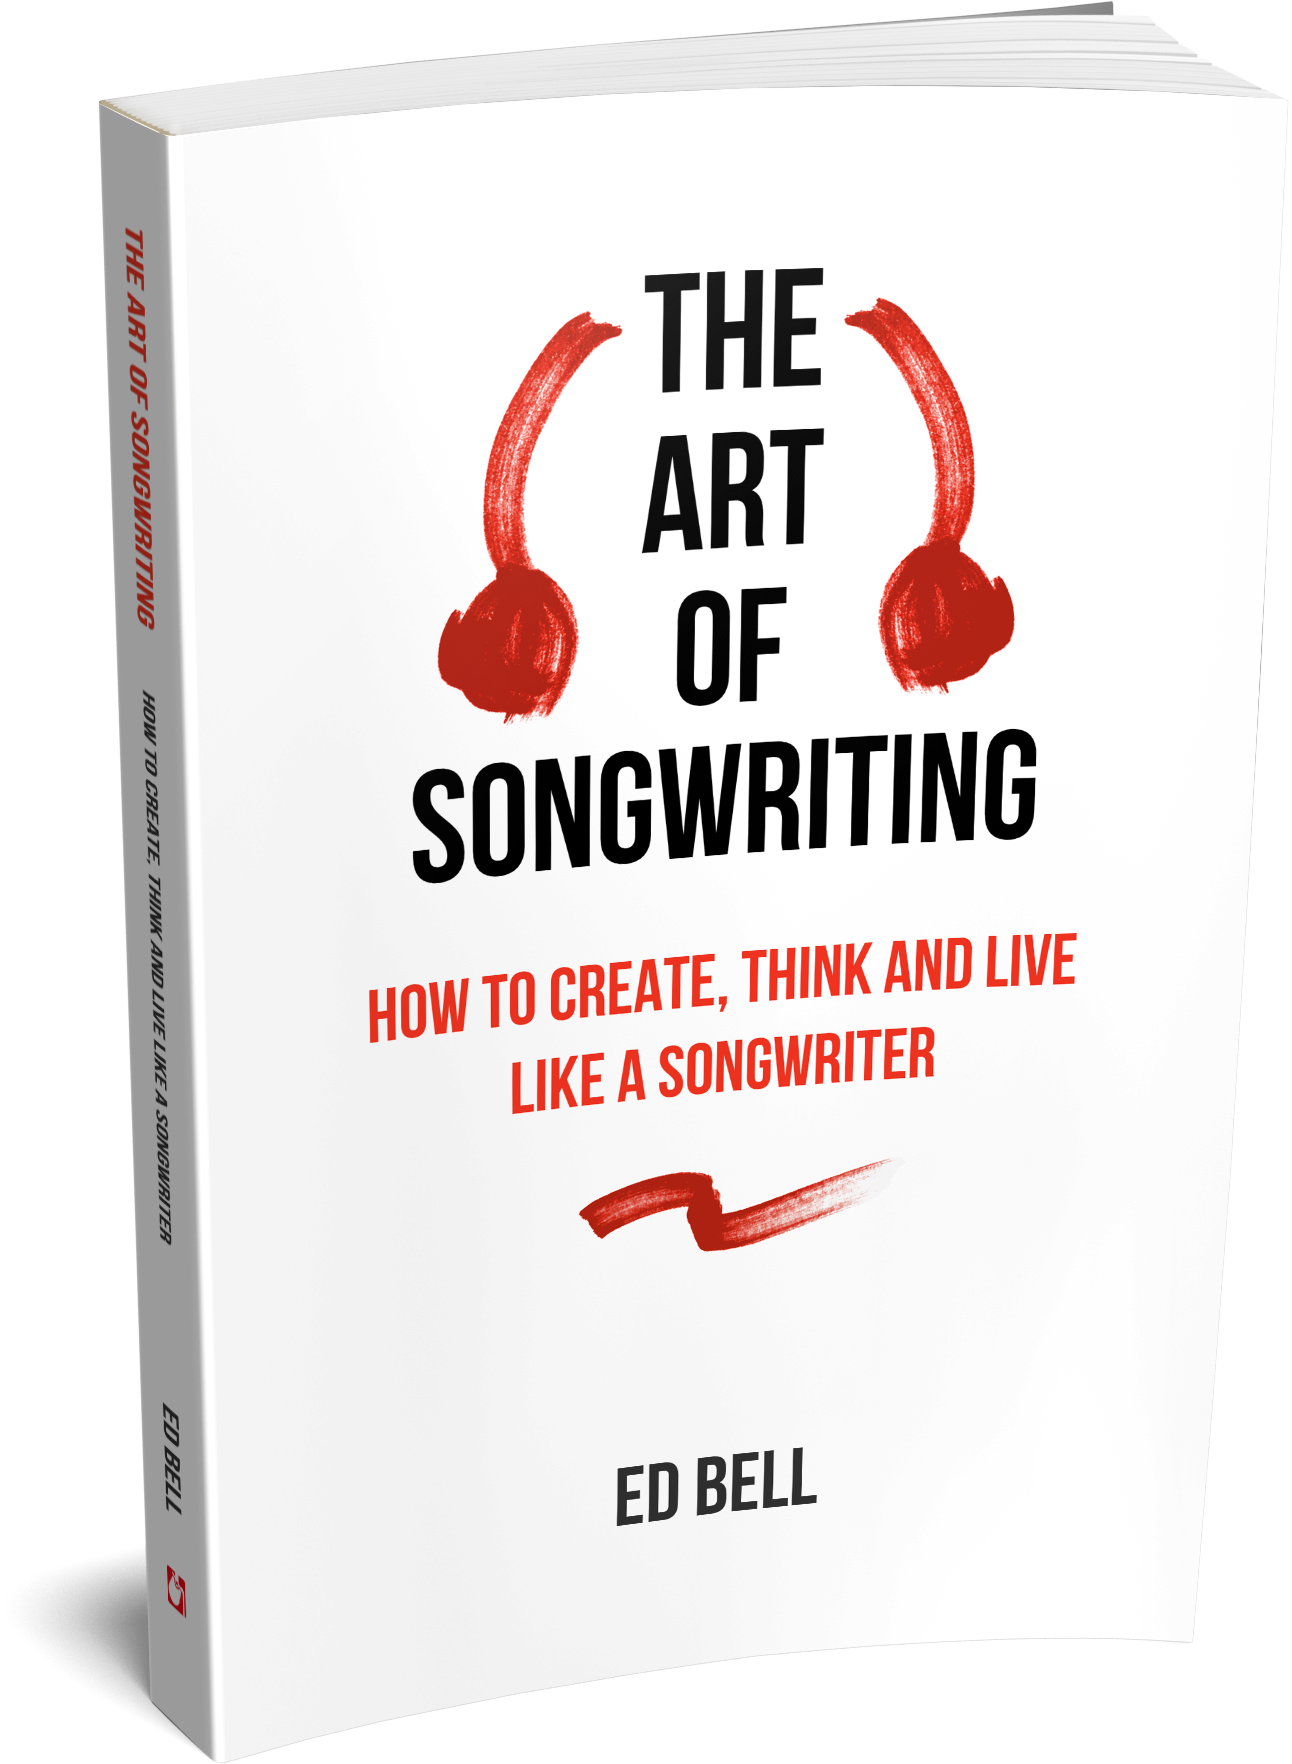 The Art of Songwriting. Write Songs. Songwriting Book.